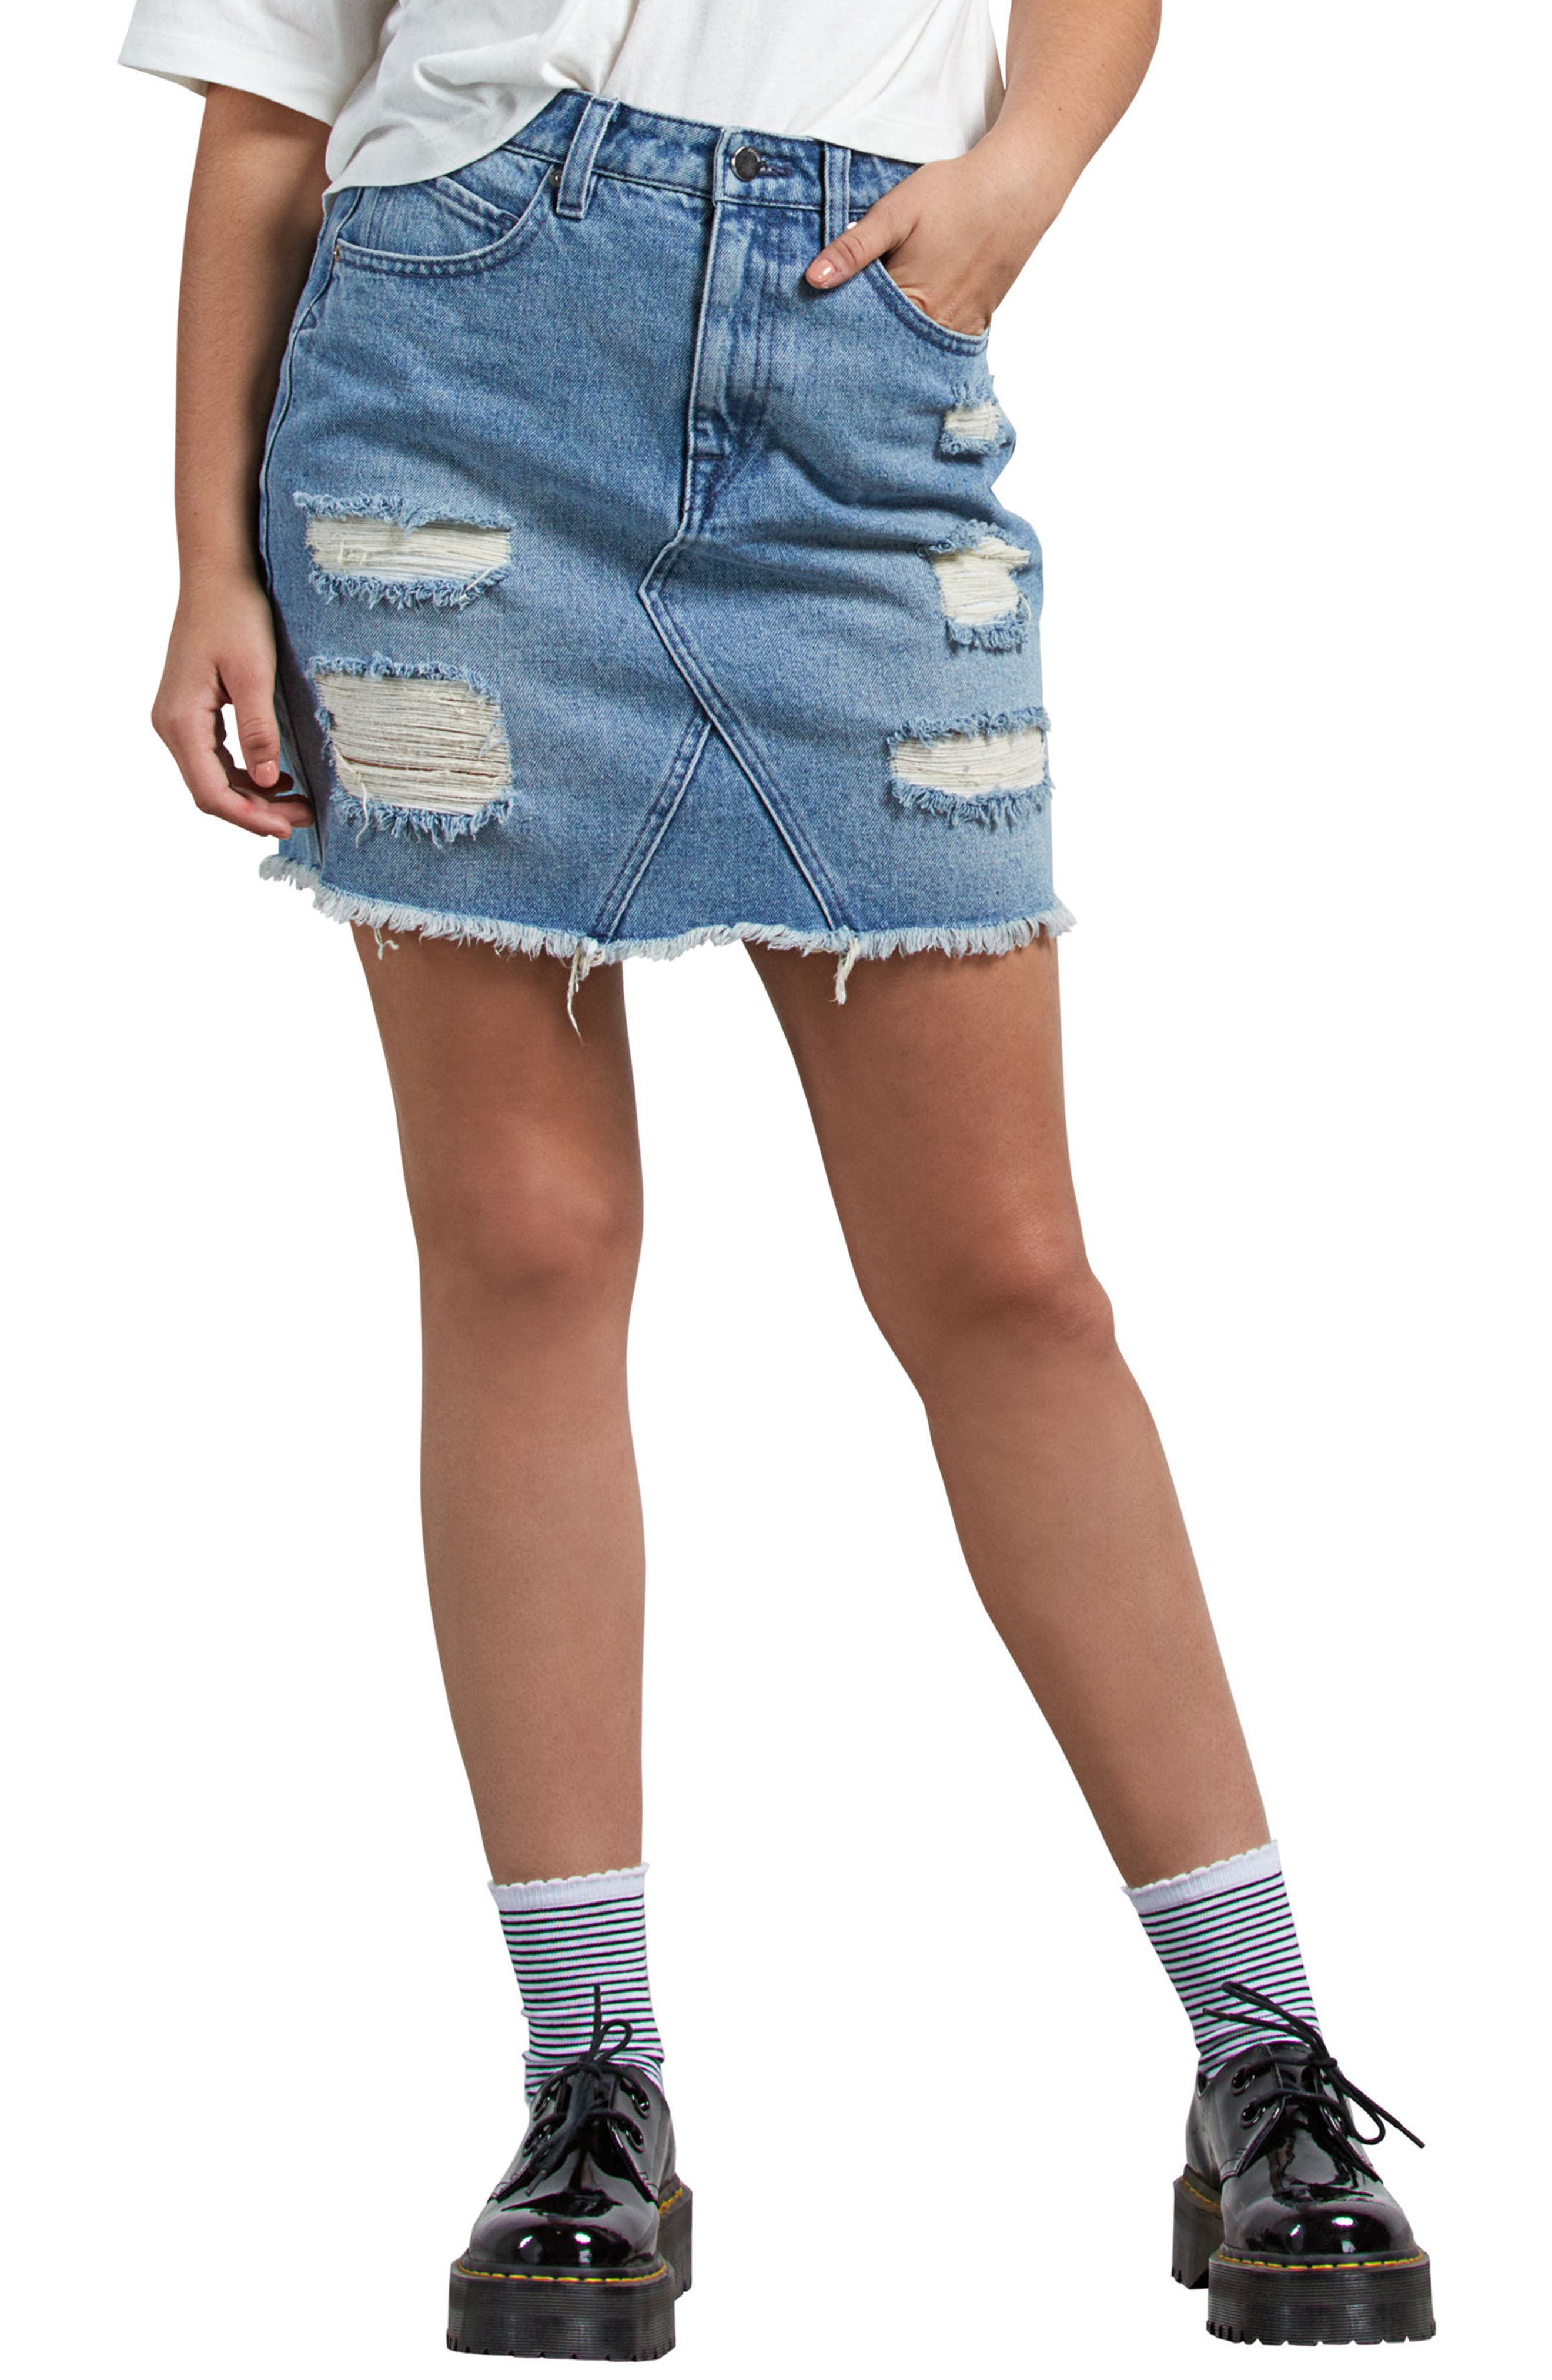 Stoned Denim Skirt,                         Main,                         color, HEAVY WORN FADED